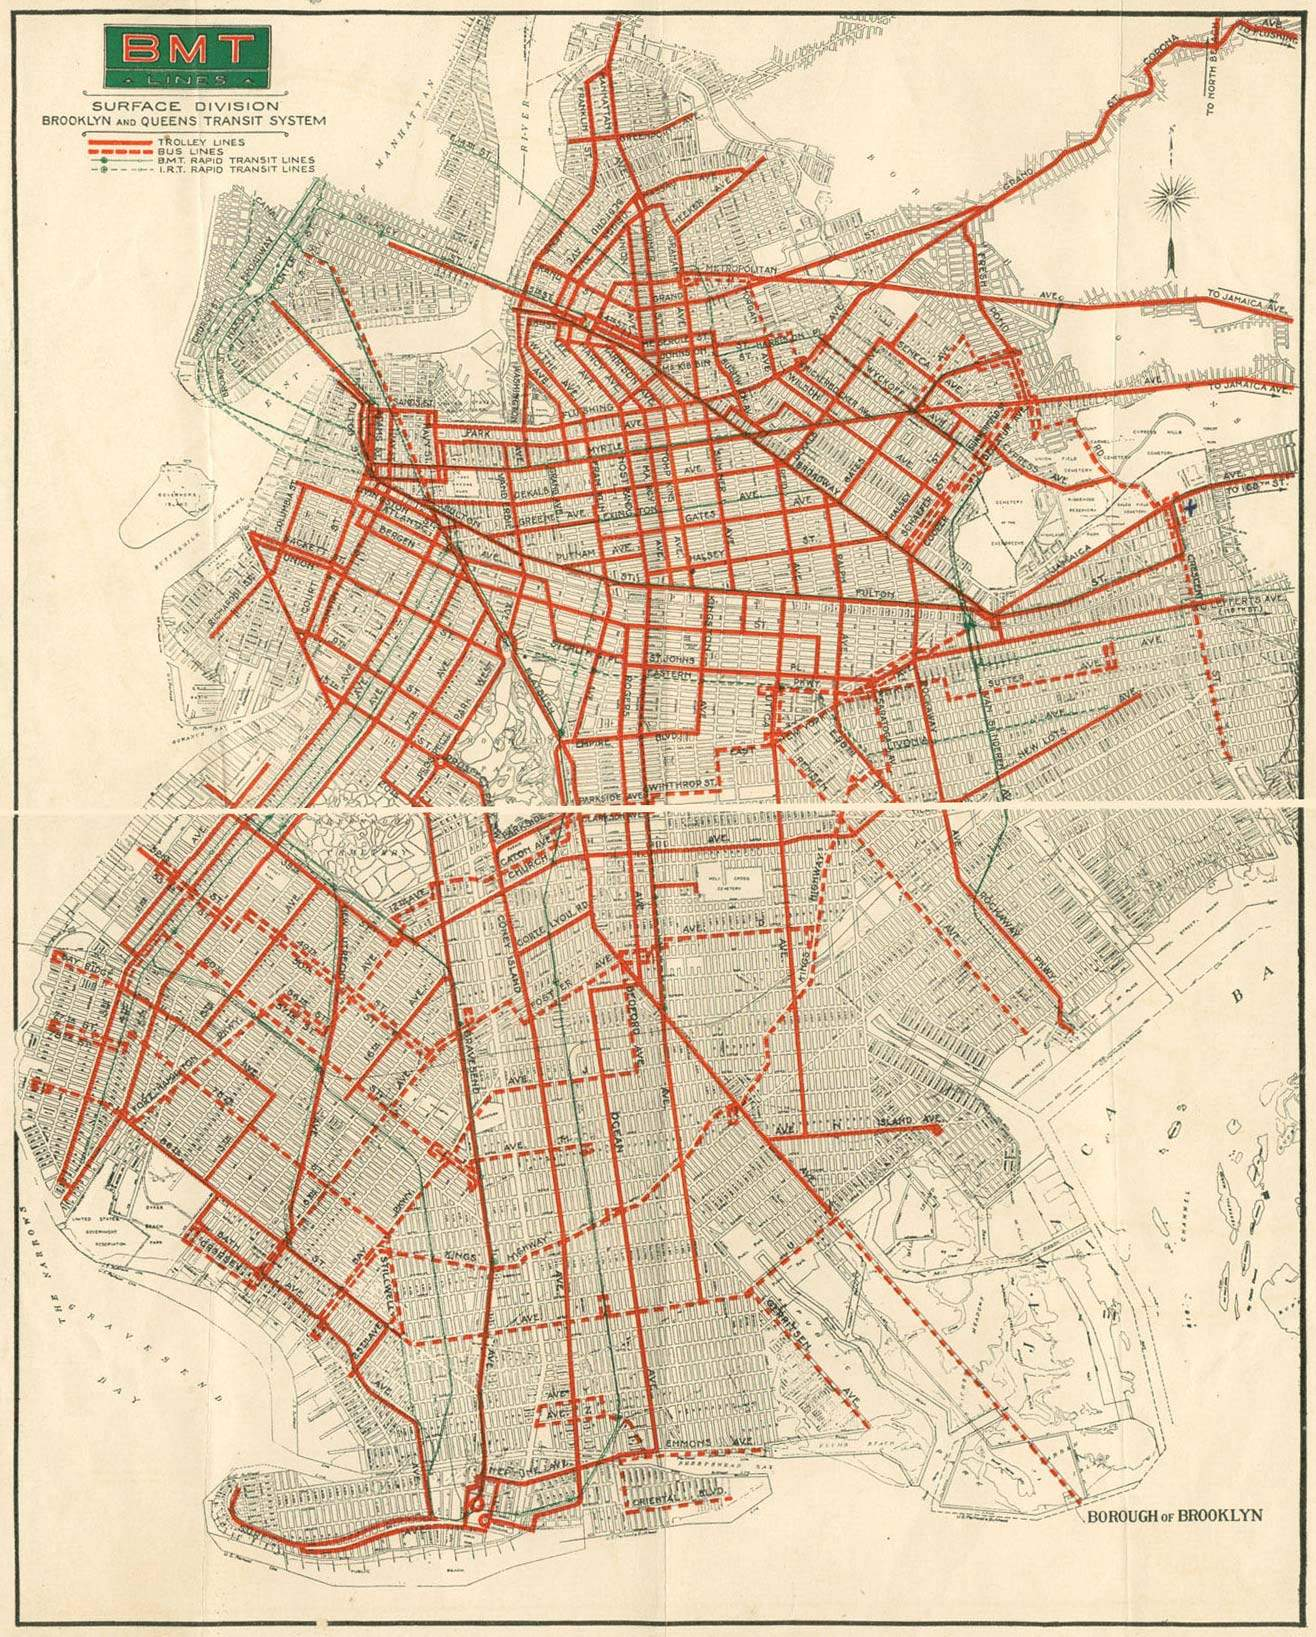 Map : Vintage Brooklyn Trolly System Map Circa 1930 ... Manhattan Transit Map on manhattan train map, manhattan tumblr, manhattan streets map, manhattan bus routes, manhattan transportation map, manhattan subway map, new york mta bus map, nyc manhattan map, manhattan points of interest map, manhattan bicycle map, manhattan spring, manhattan food map, manhattan jewelry heist, manhattan driving map, manhattan bus map 2011, nyc buses map, manhattan bus map 2013, manhattan taxi map, manhattan business map, new york city midtown map,